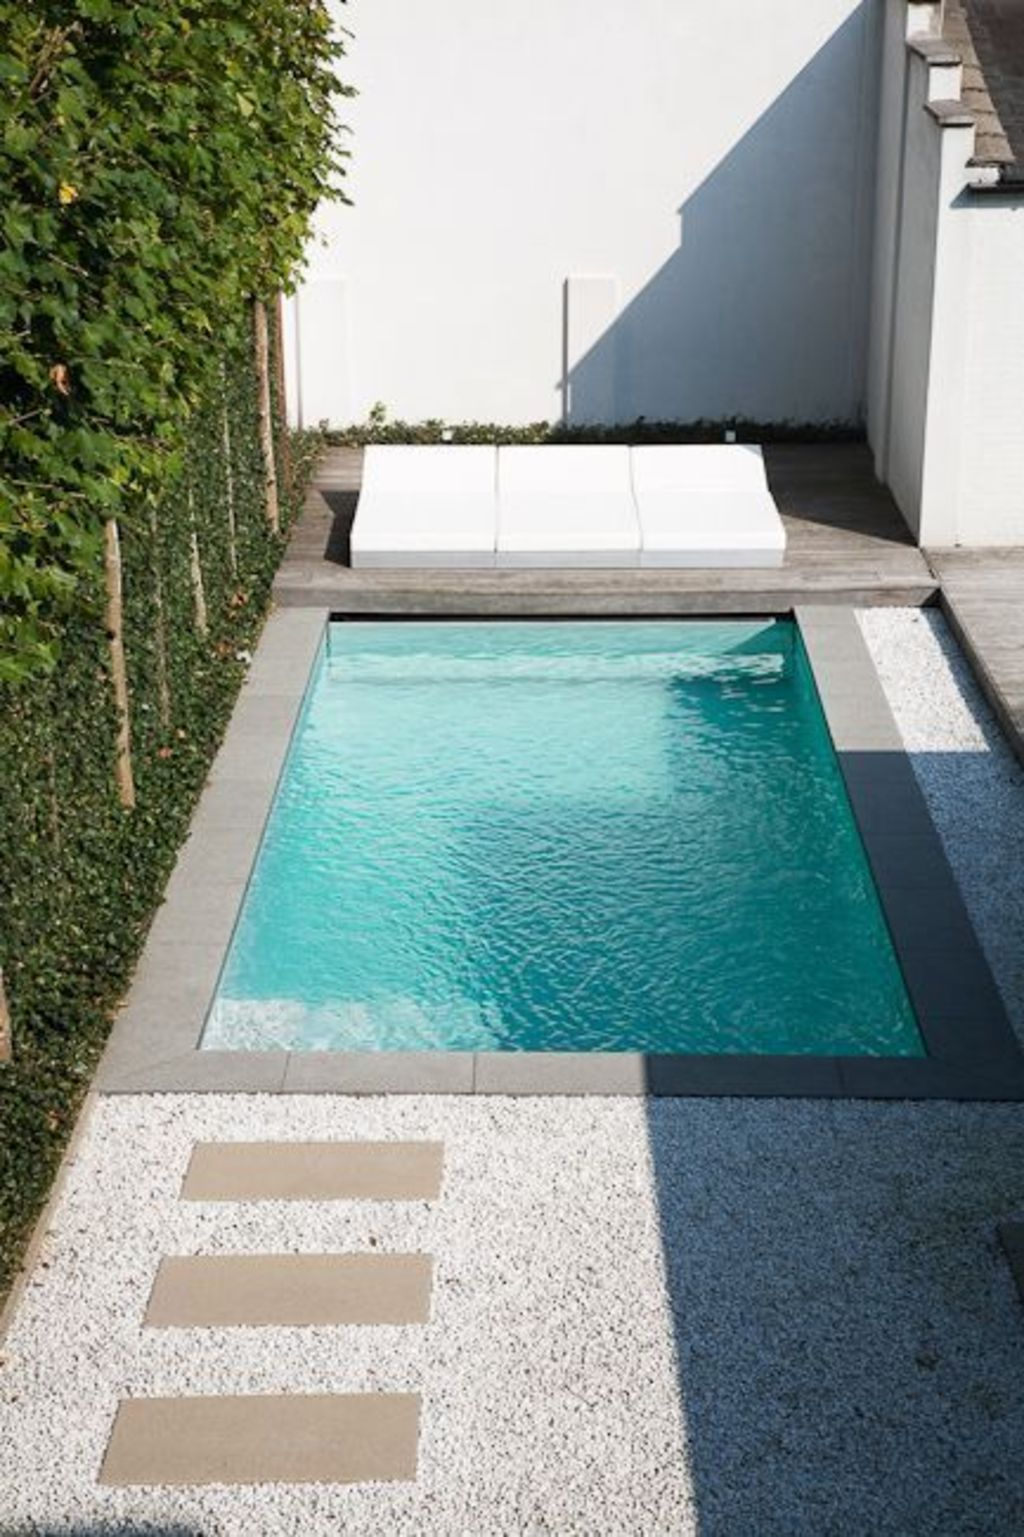 Small swimming pools made for small spaces and tight budgets Part 23